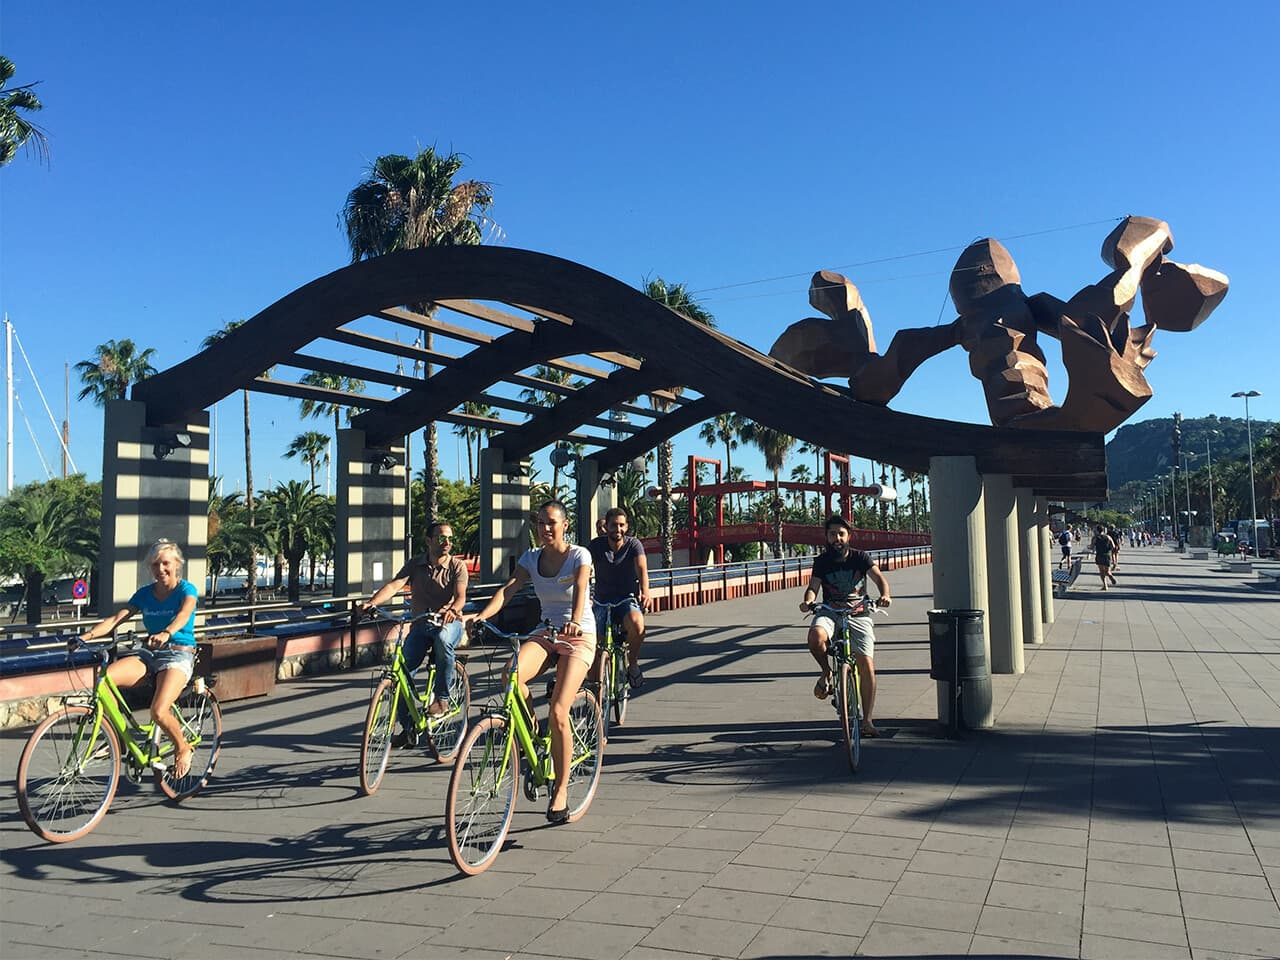 Visitors explore Barcelona by bike with their expert guide